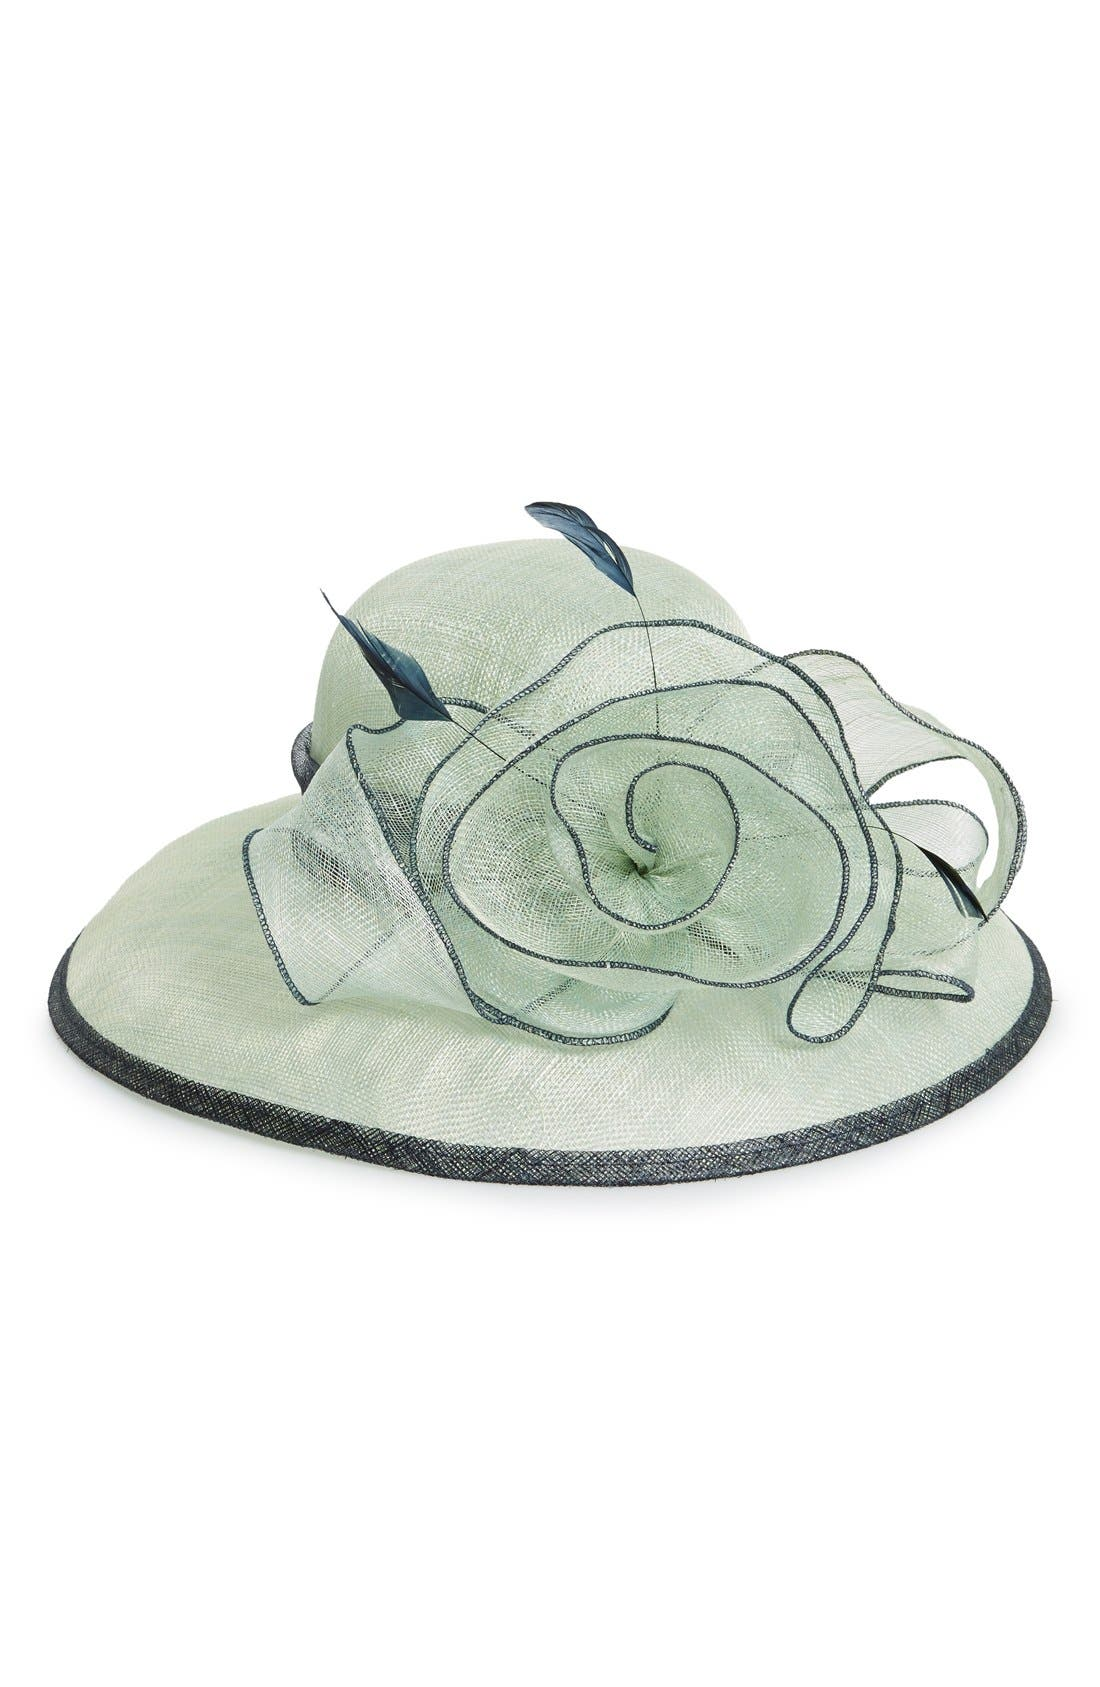 'To the Races' Floral Downbrim Hat,                         Main,                         color, 300